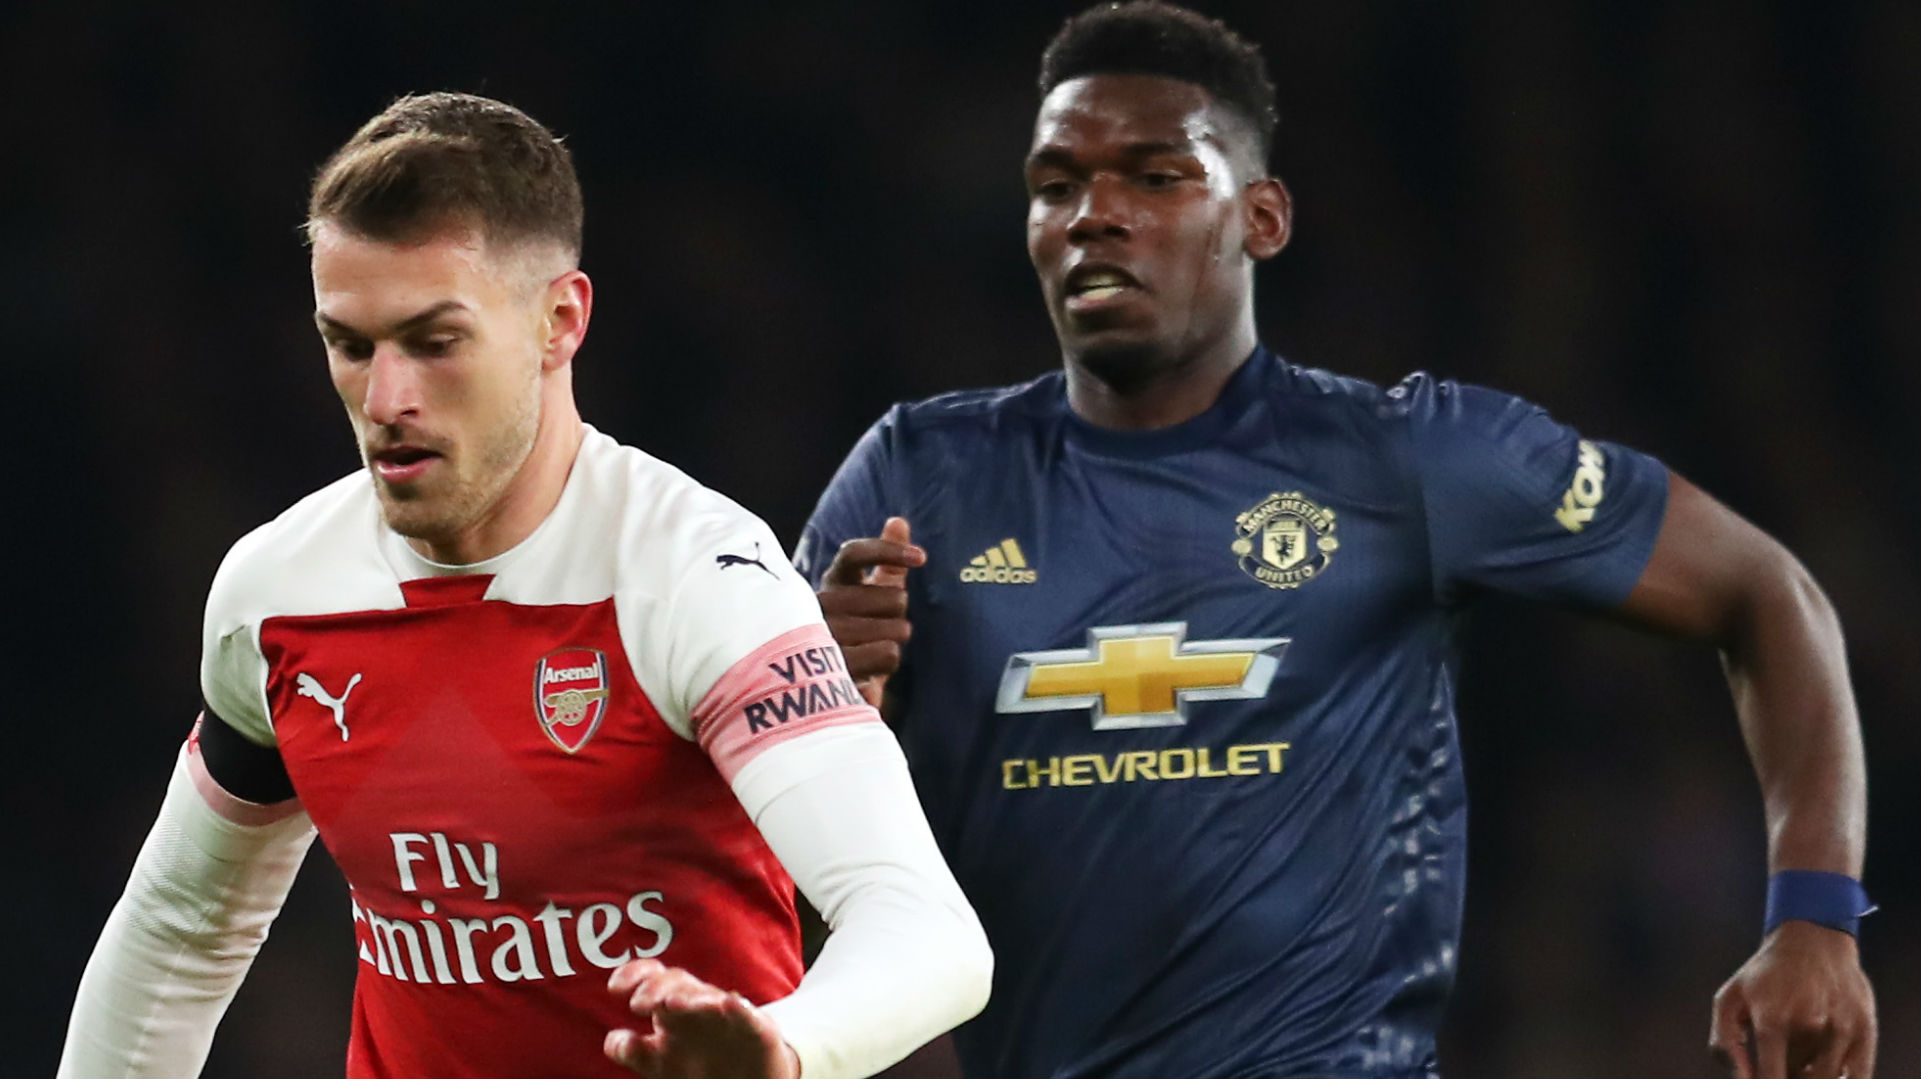 Aaron Ramsey Arsenal Paul Pogba Manchester United FA Cup